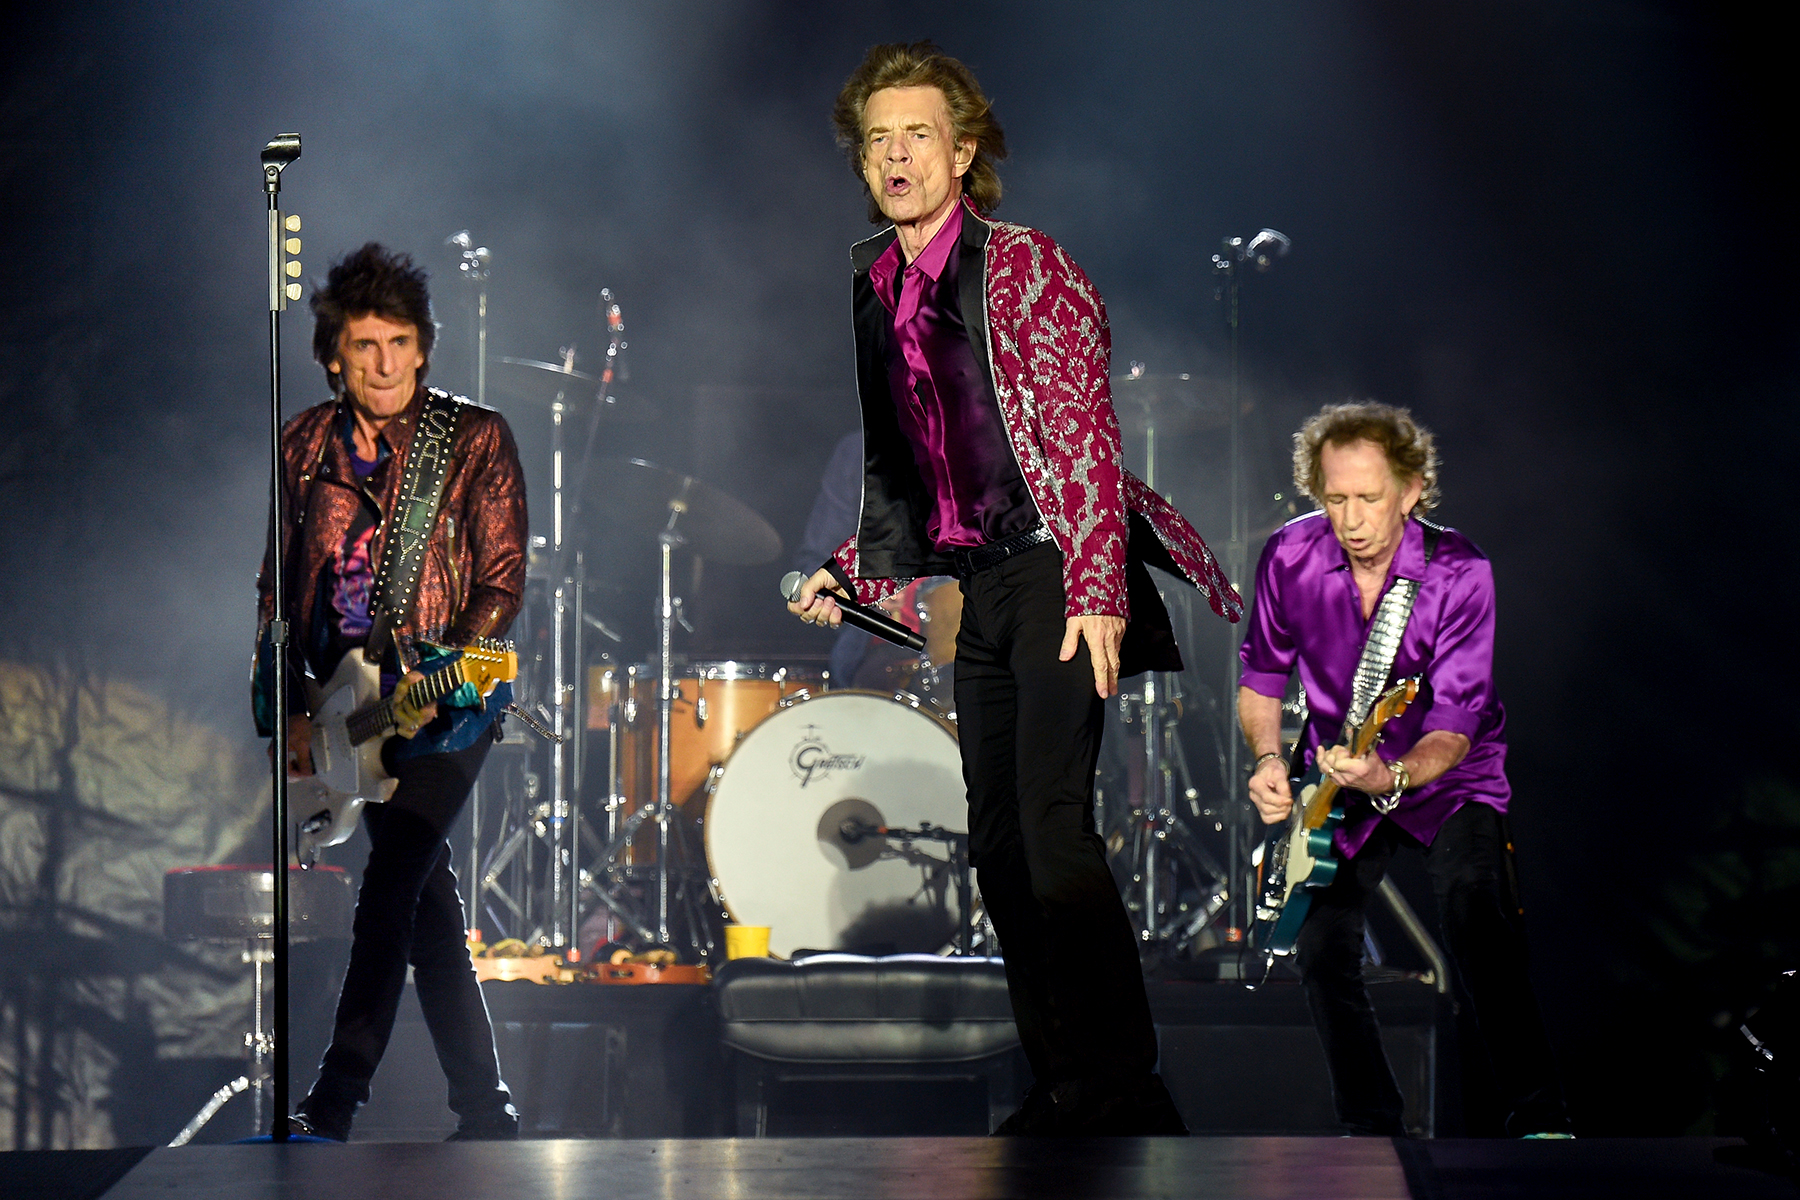 The Rolling Stones Reflect on Loss of Charlie Watts, Detail Plans for Upcoming Tour - Rolling Stone